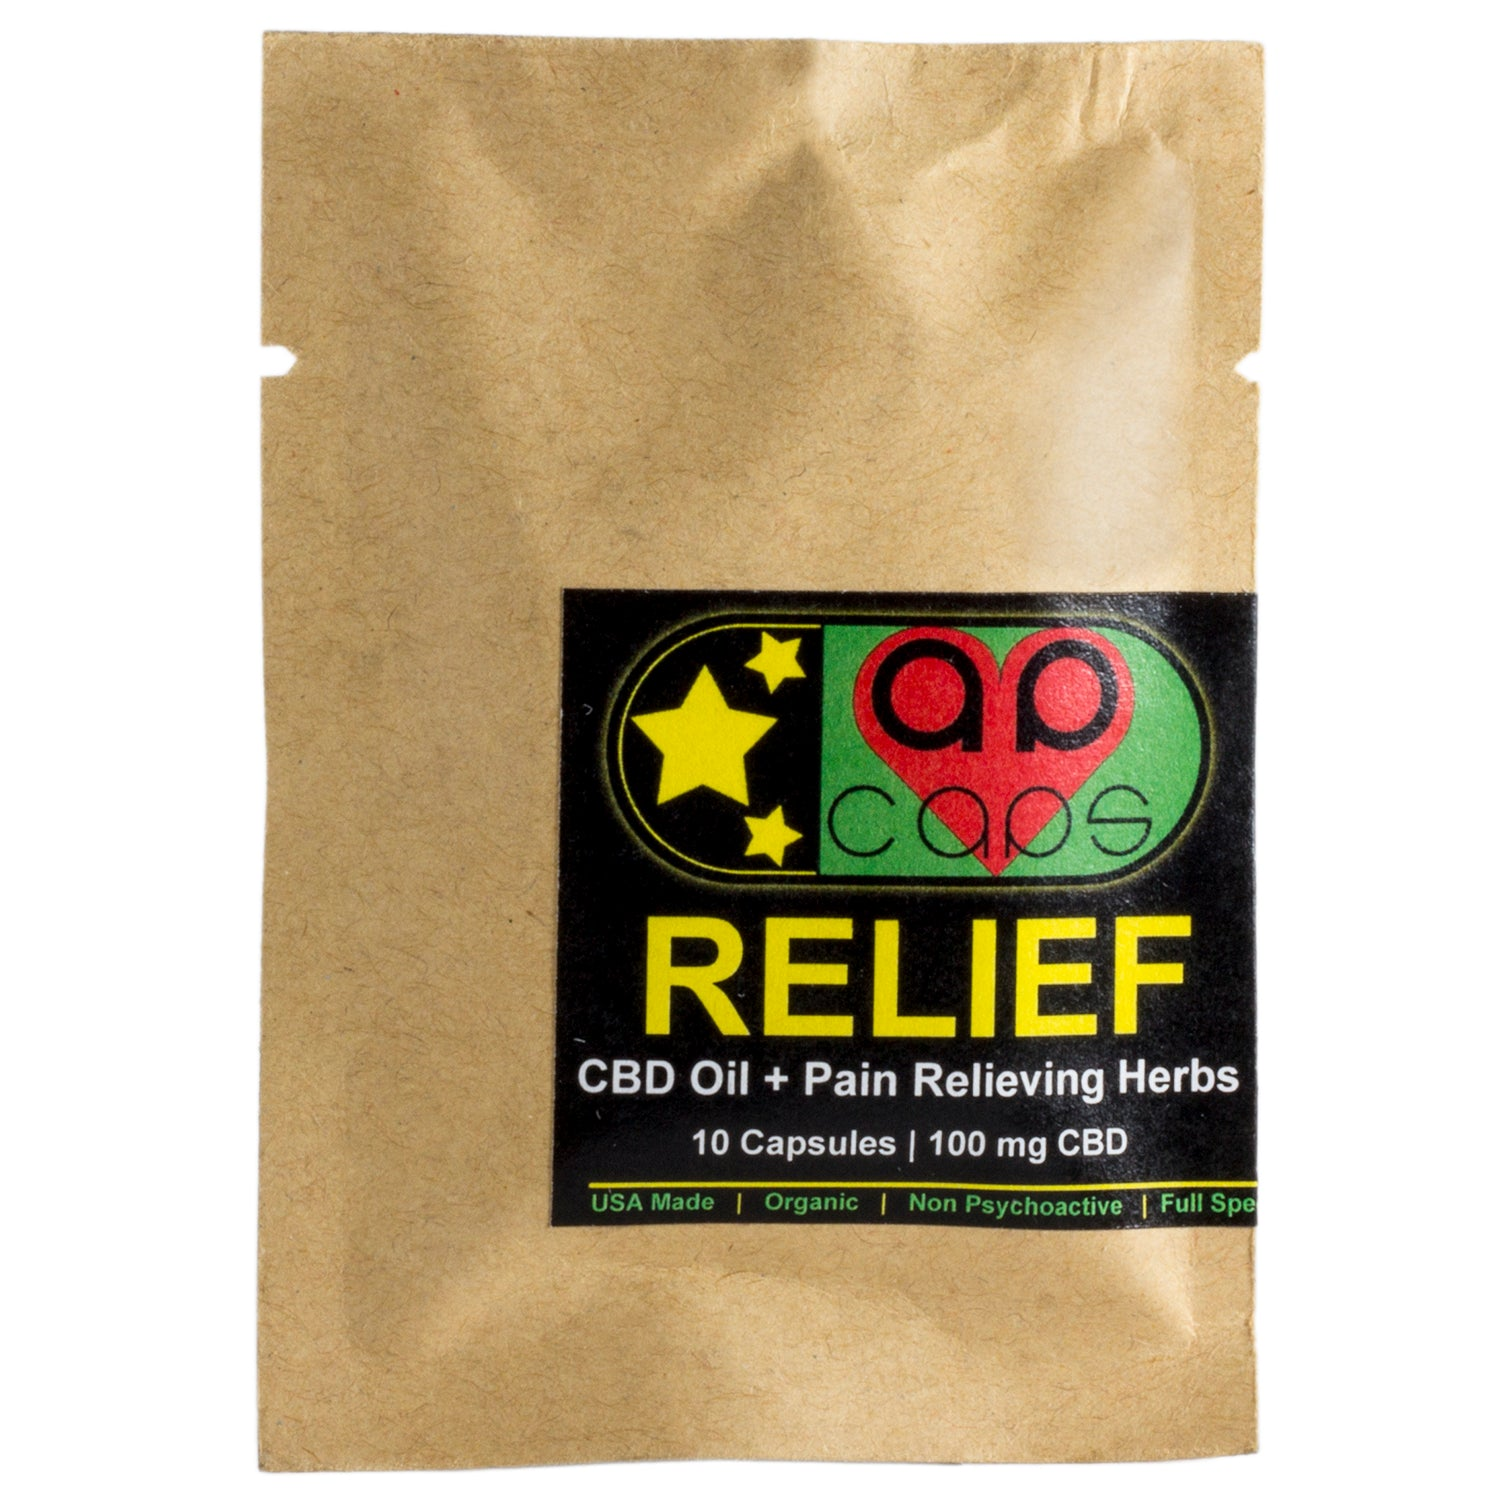 RELIEF (10 Capsules) - CBD plus pain-relieving herbs